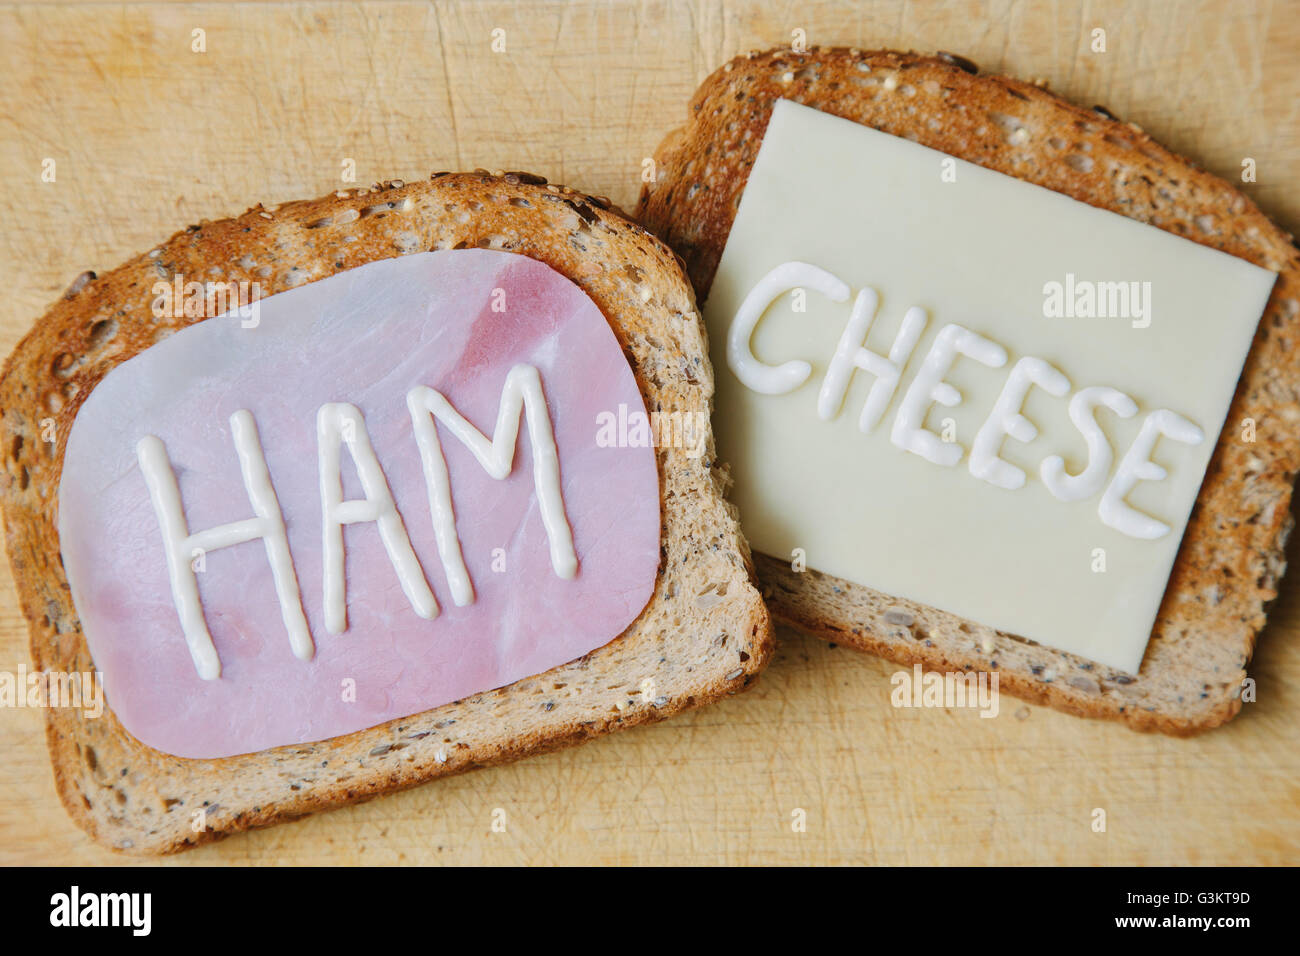 Overhead view of the words ham and cheese written on toast in mayonnaise - Stock Image